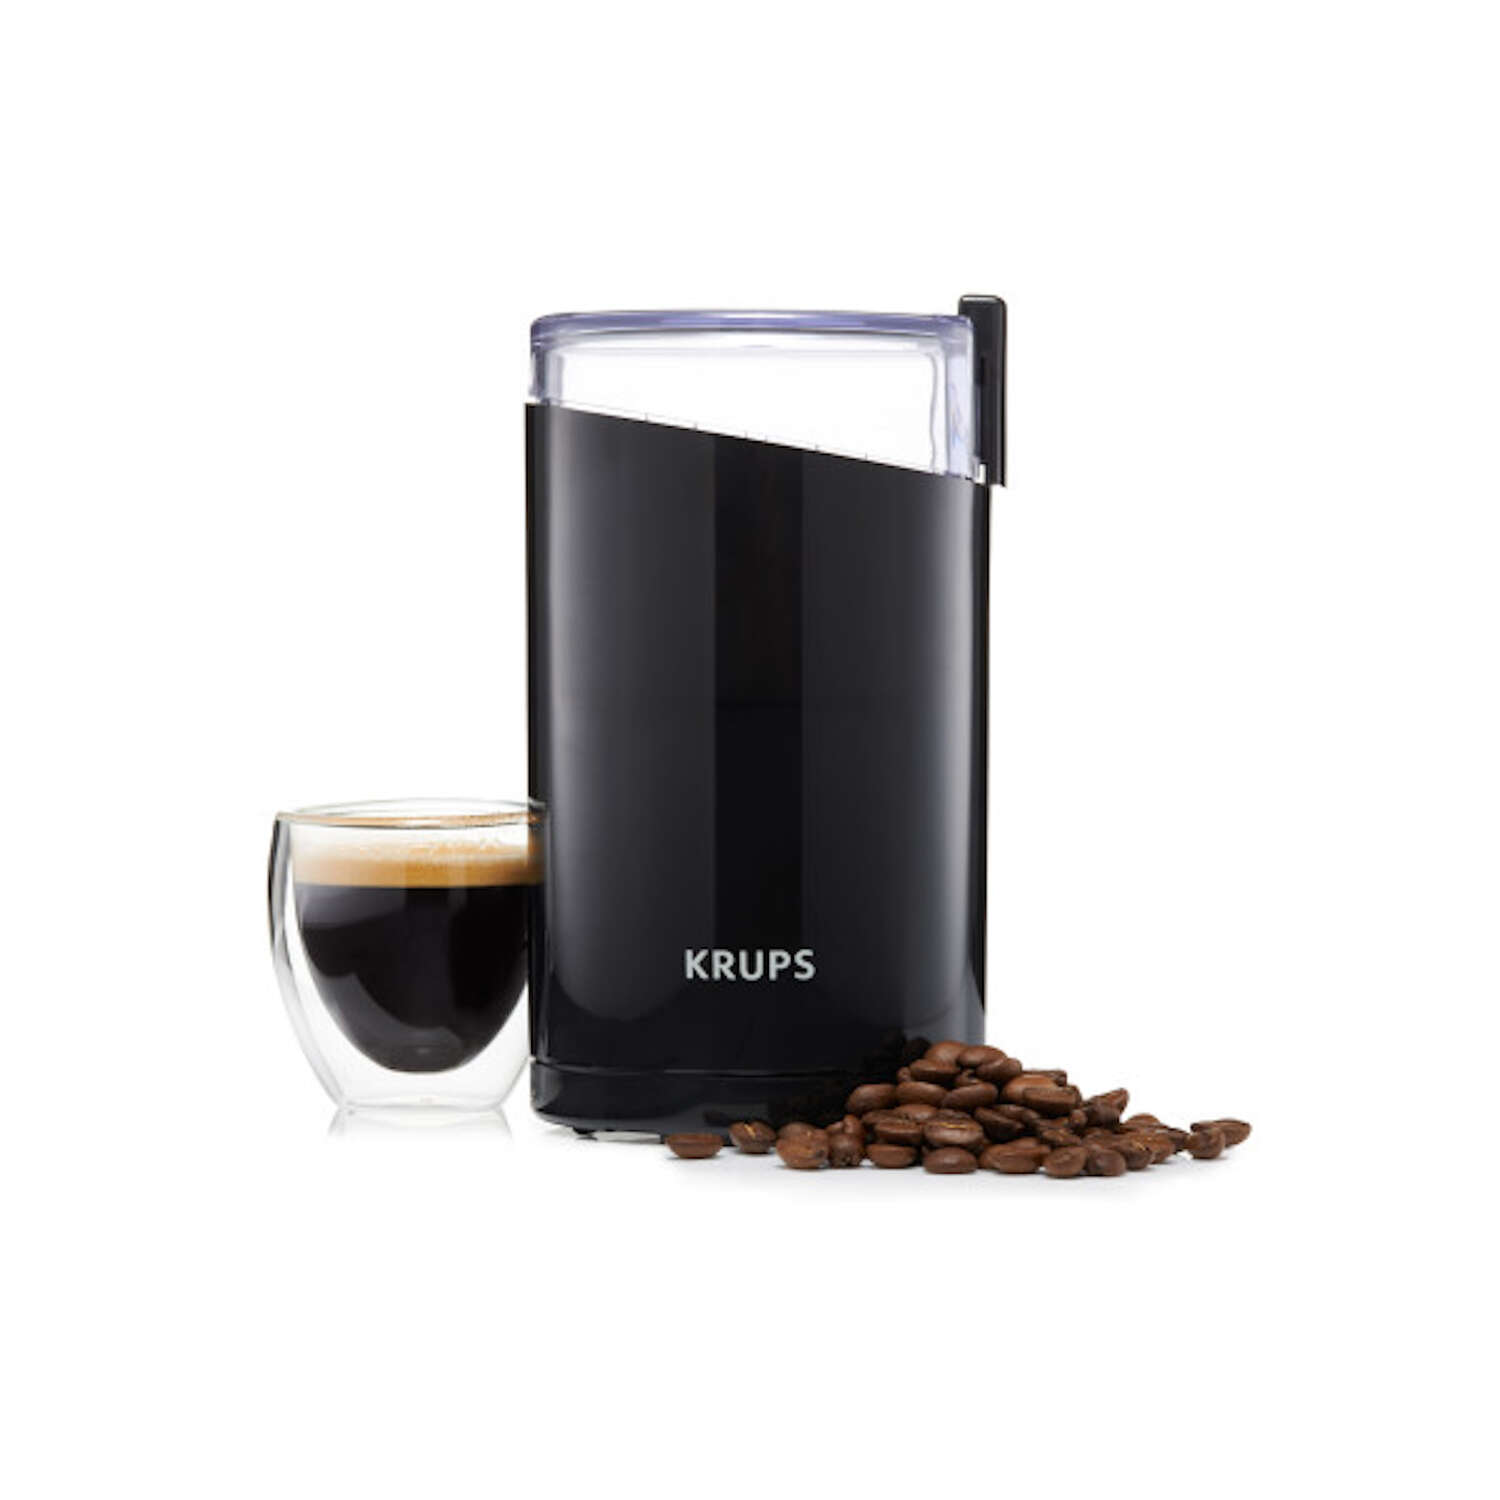 Krups  Black  Stainless Steel  3  Coffee Grinder